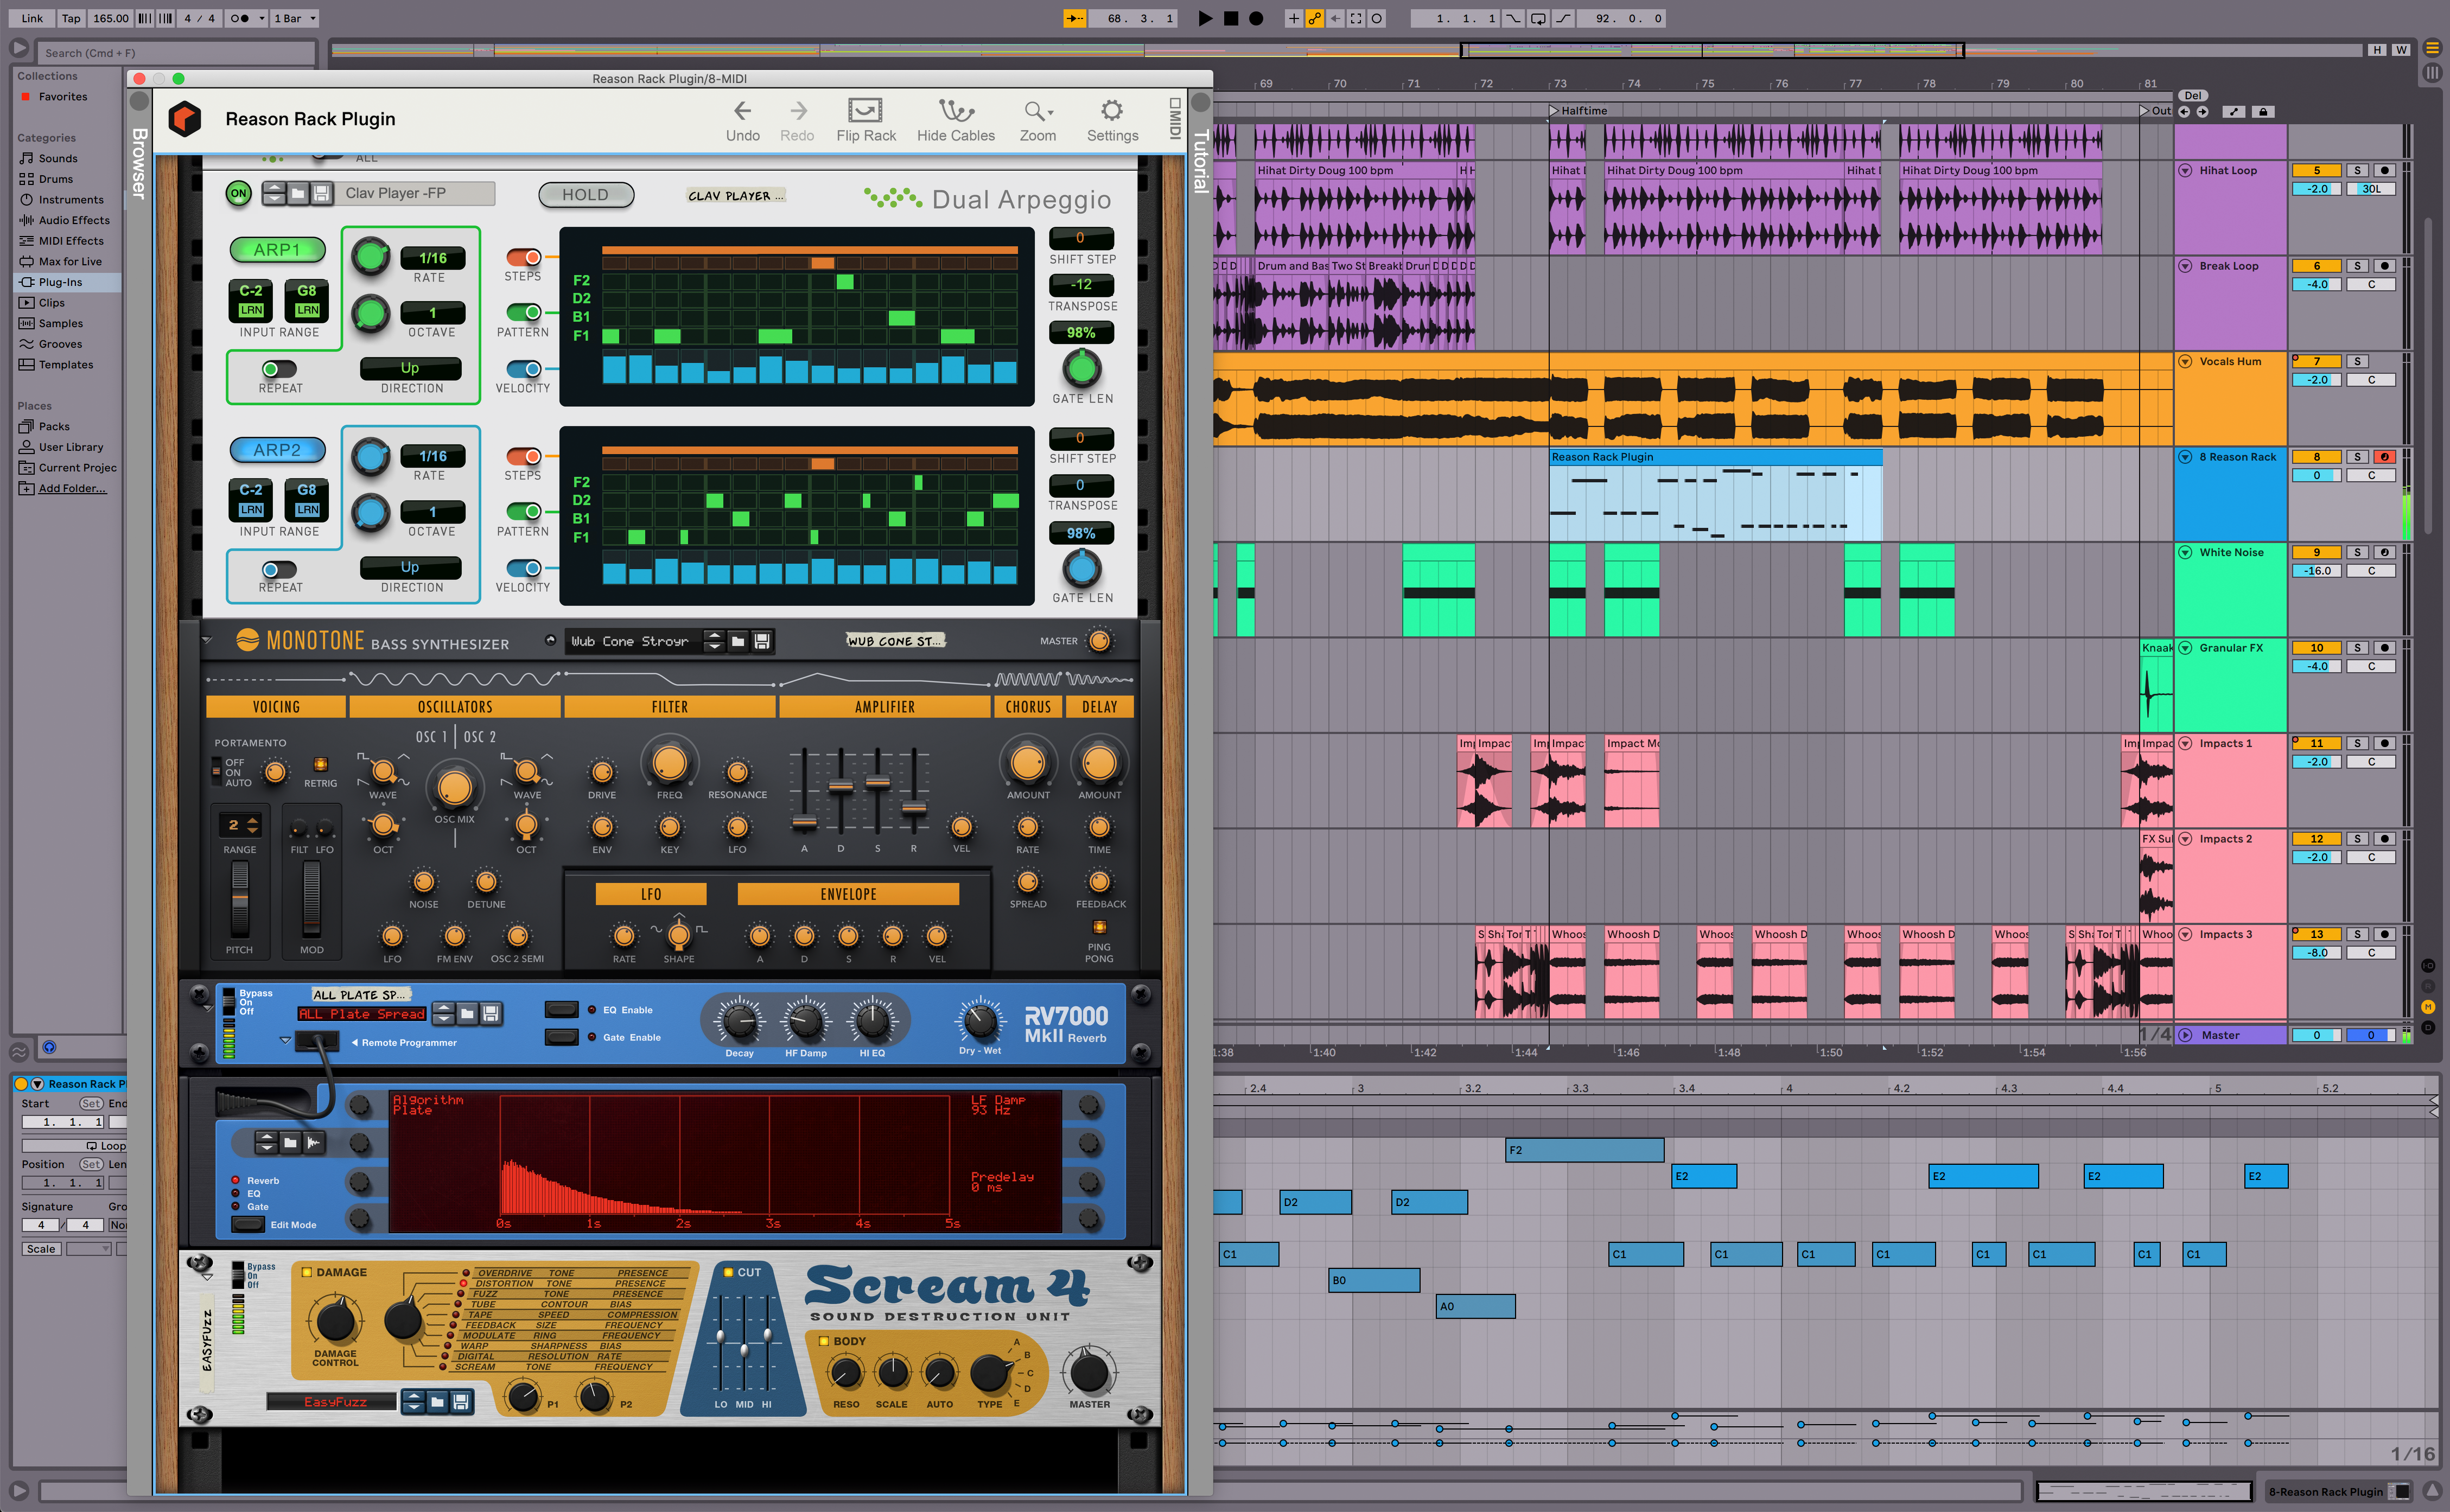 Reason Rack being used as a plugin within Ableton Live